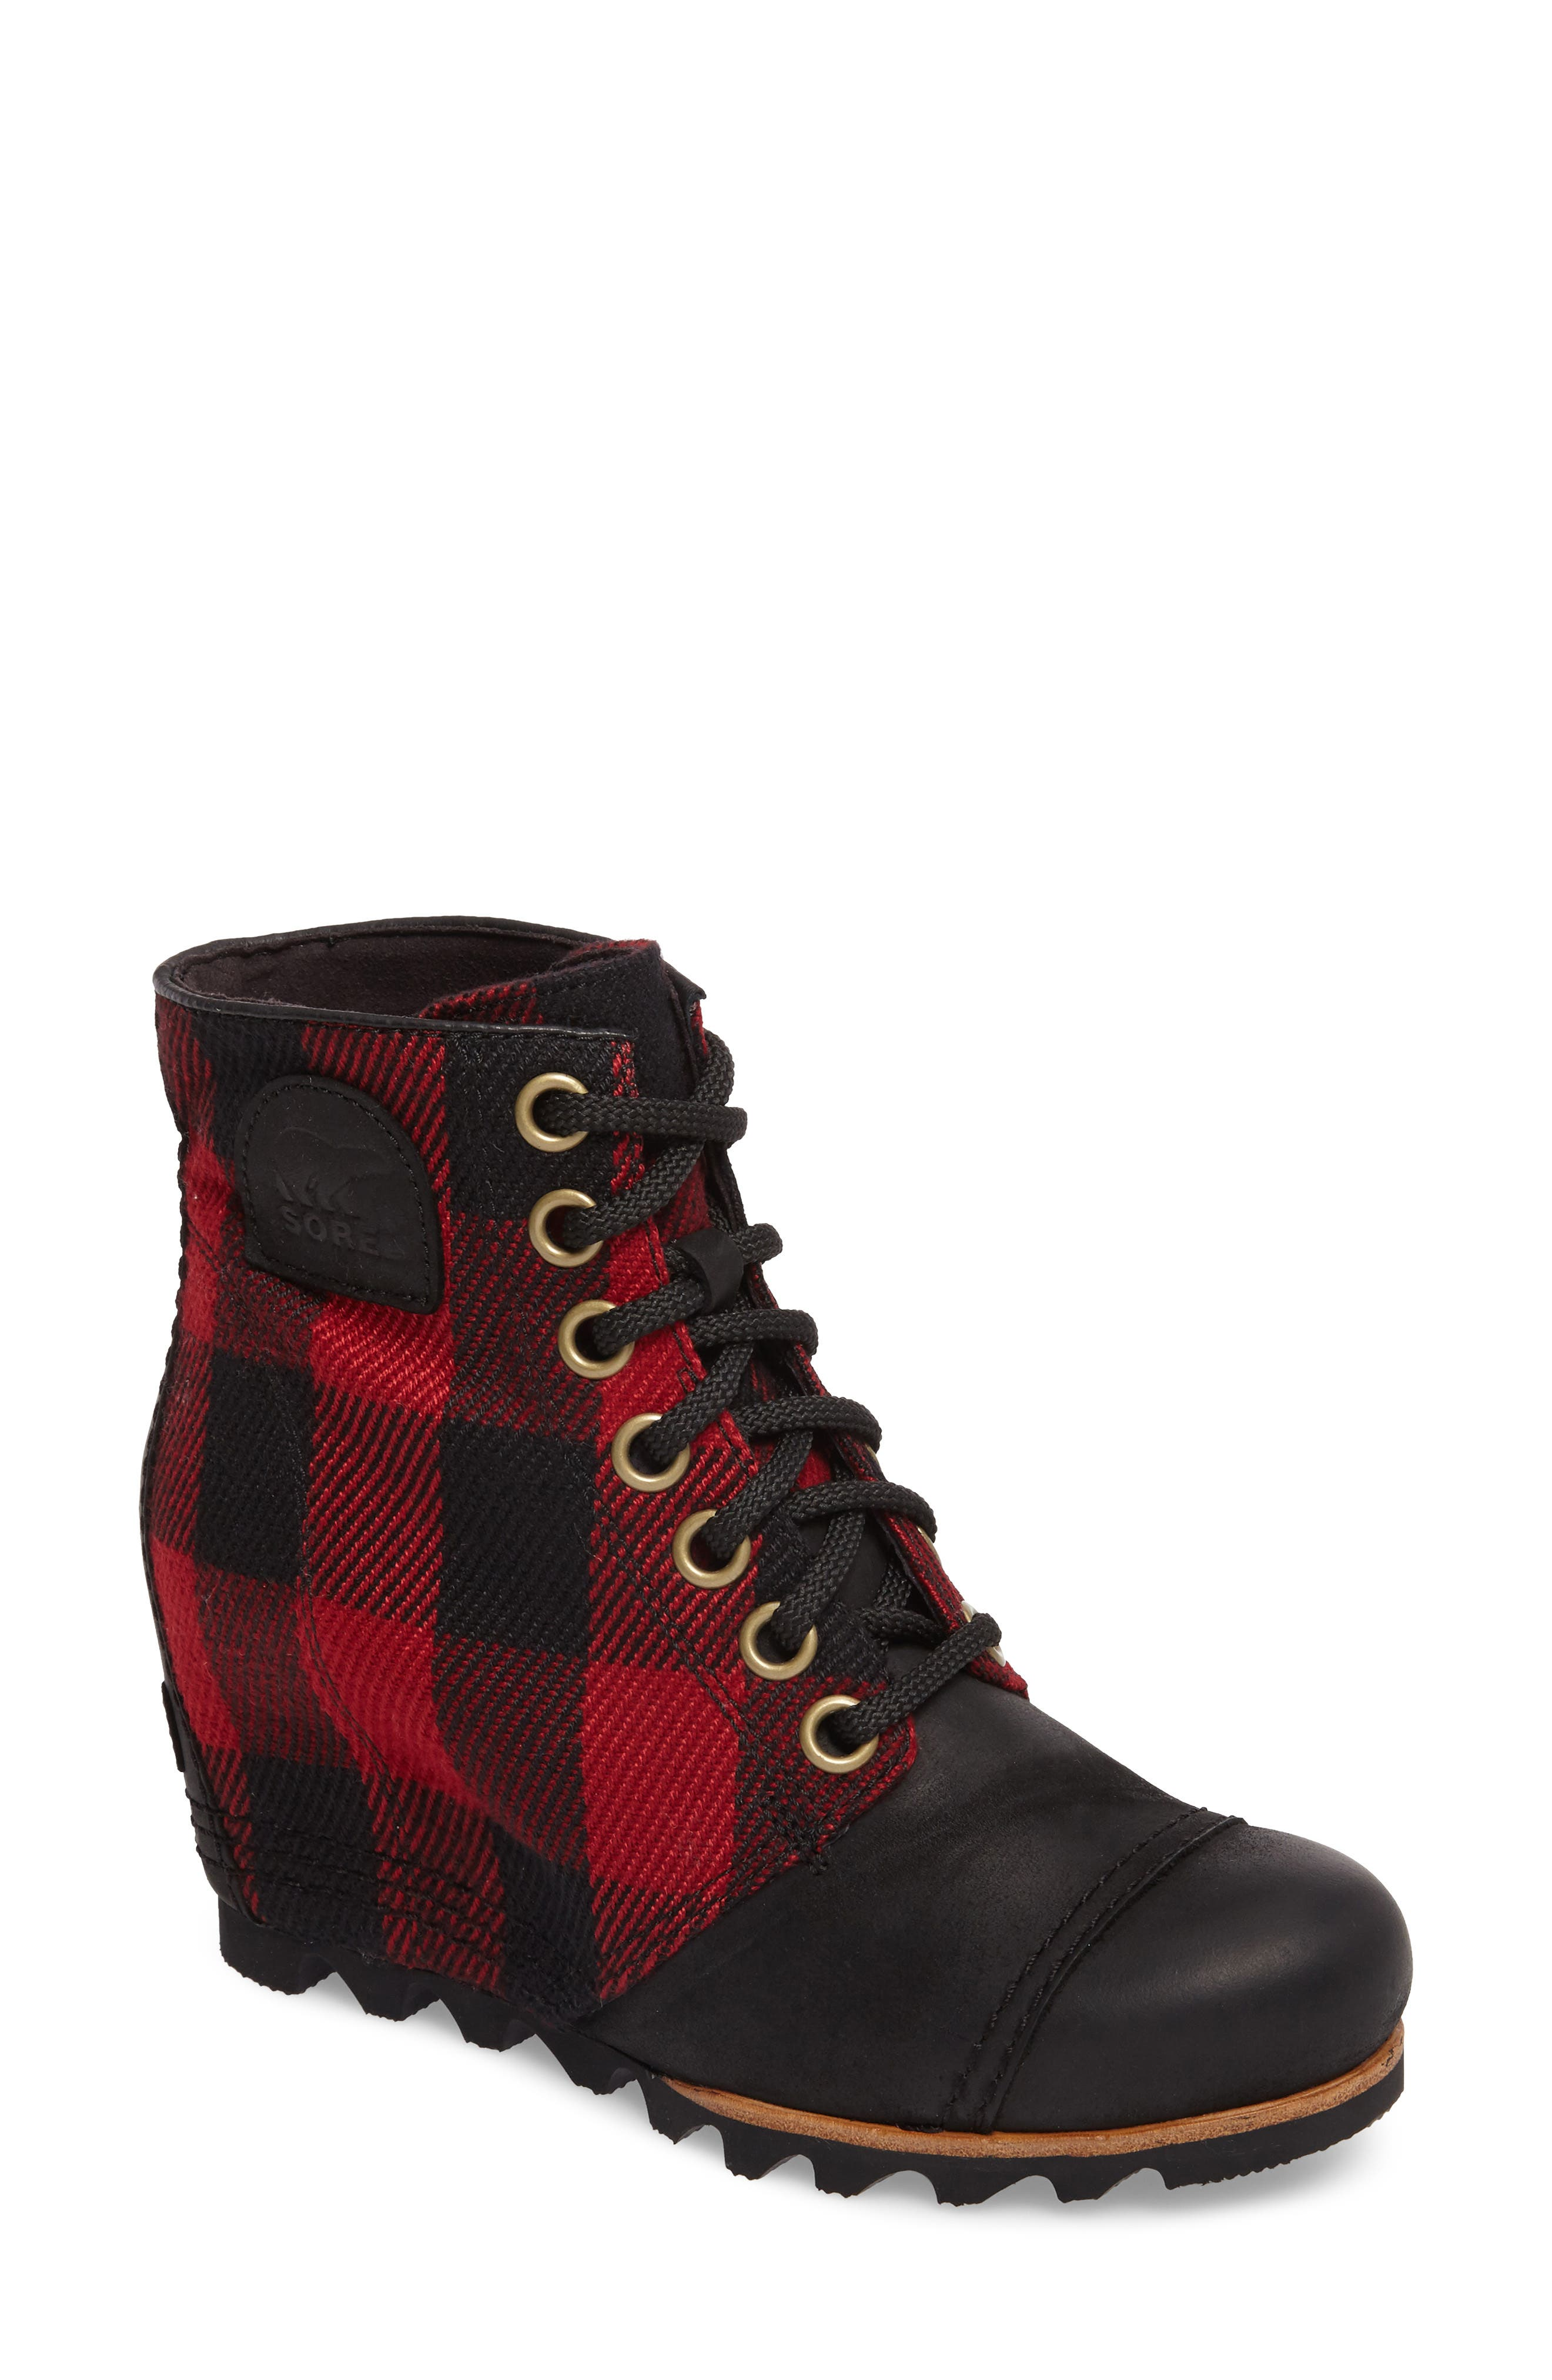 PDX<sup>™</sup> Waterproof Wedge Bootie,                             Main thumbnail 1, color,                             Black Plaid